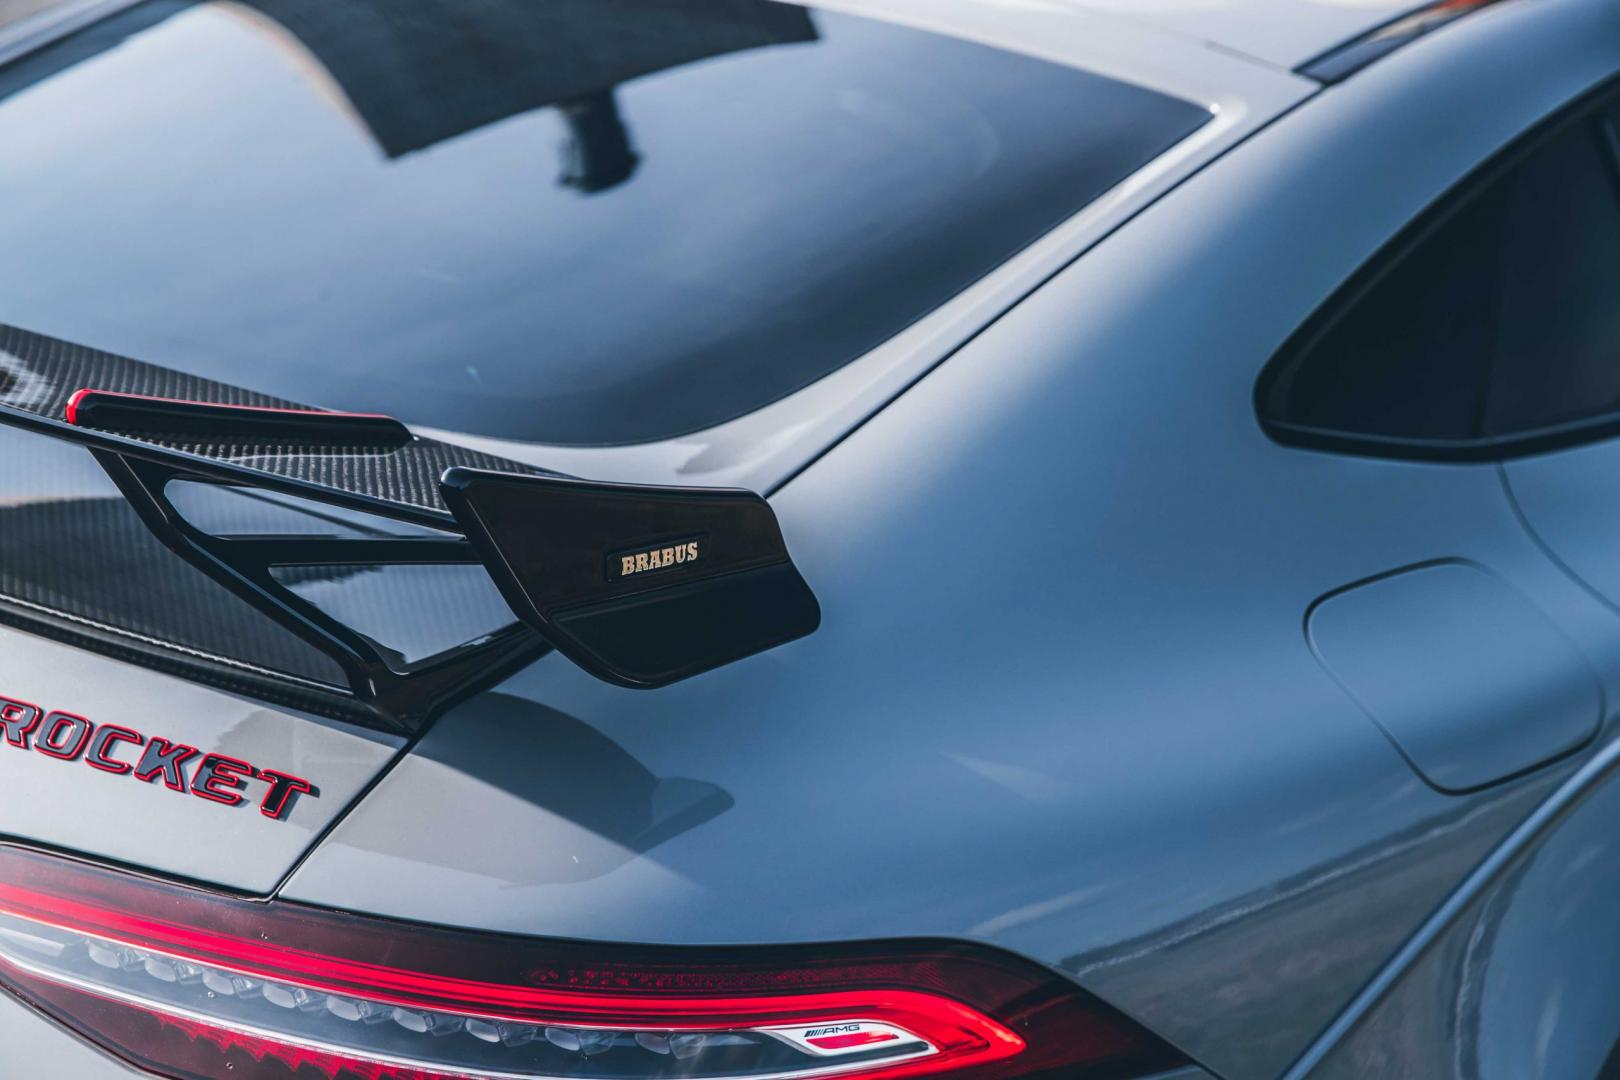 Spoiler Brabus Rocket 900 op basis van Mercedes-AMG GT 63 S 4-Door